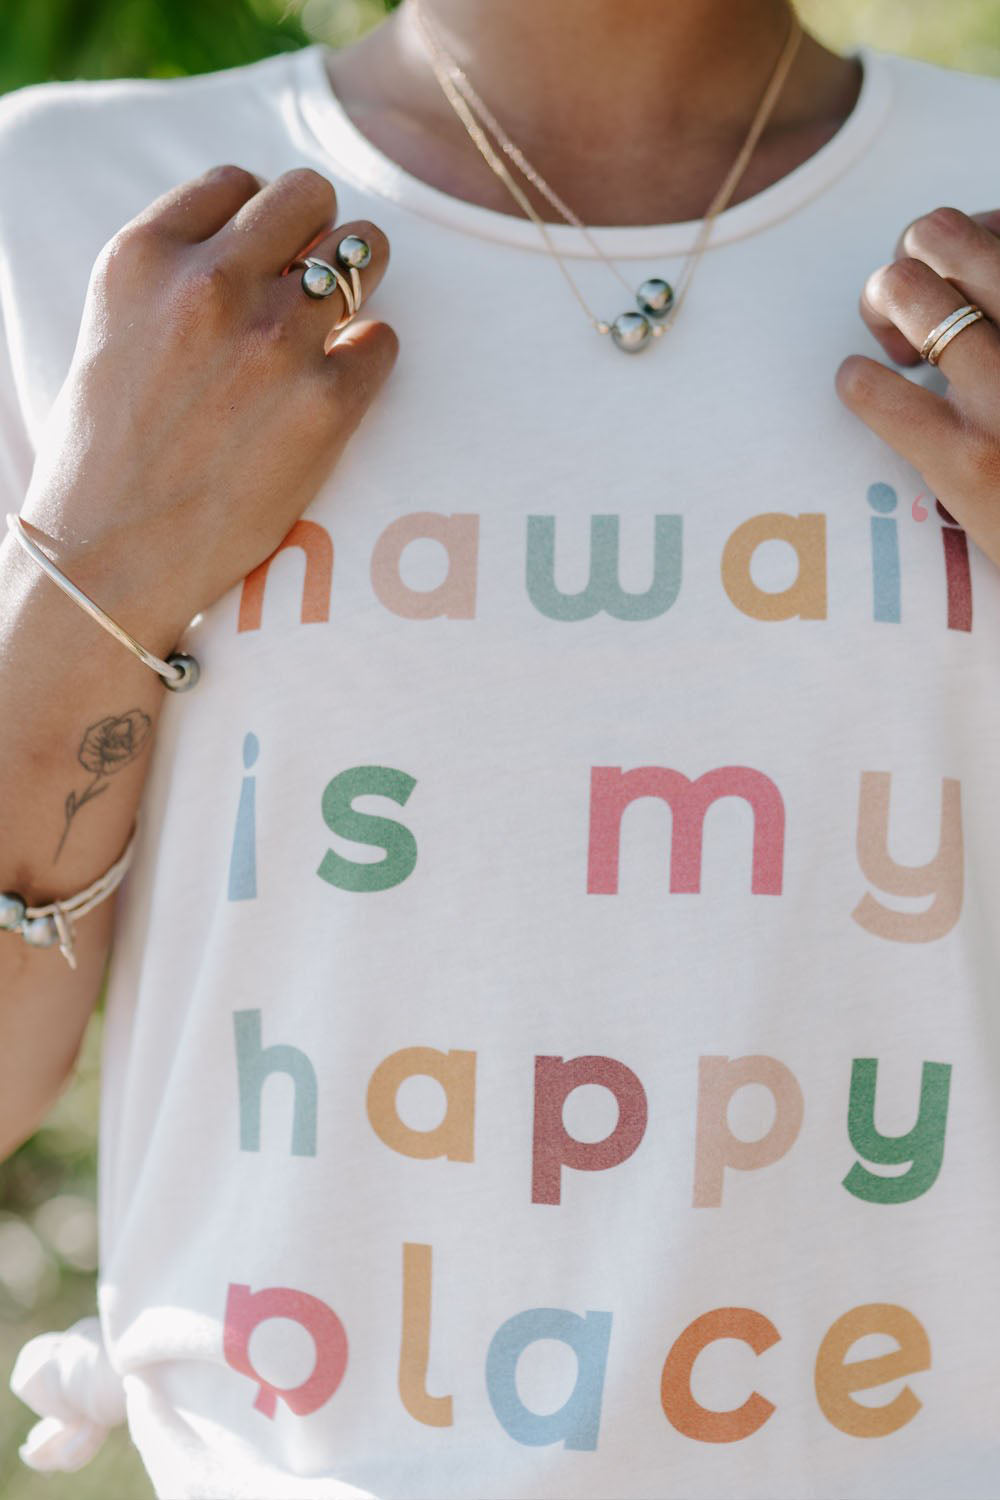 Dolkii Tee Hawai'i is My Happy Place in Coconut